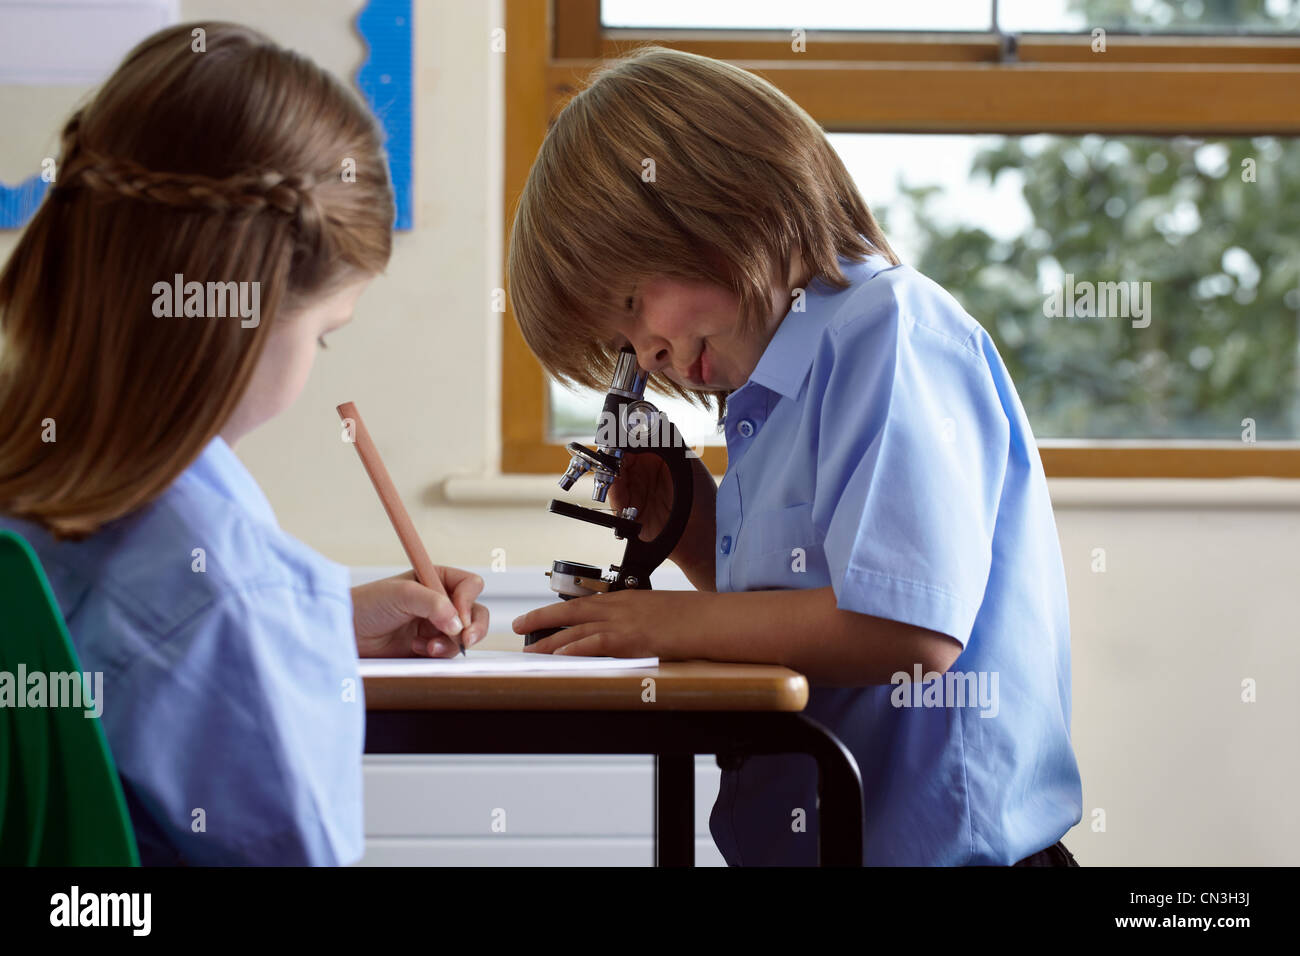 School children working on an assignment in classroom - Stock Image